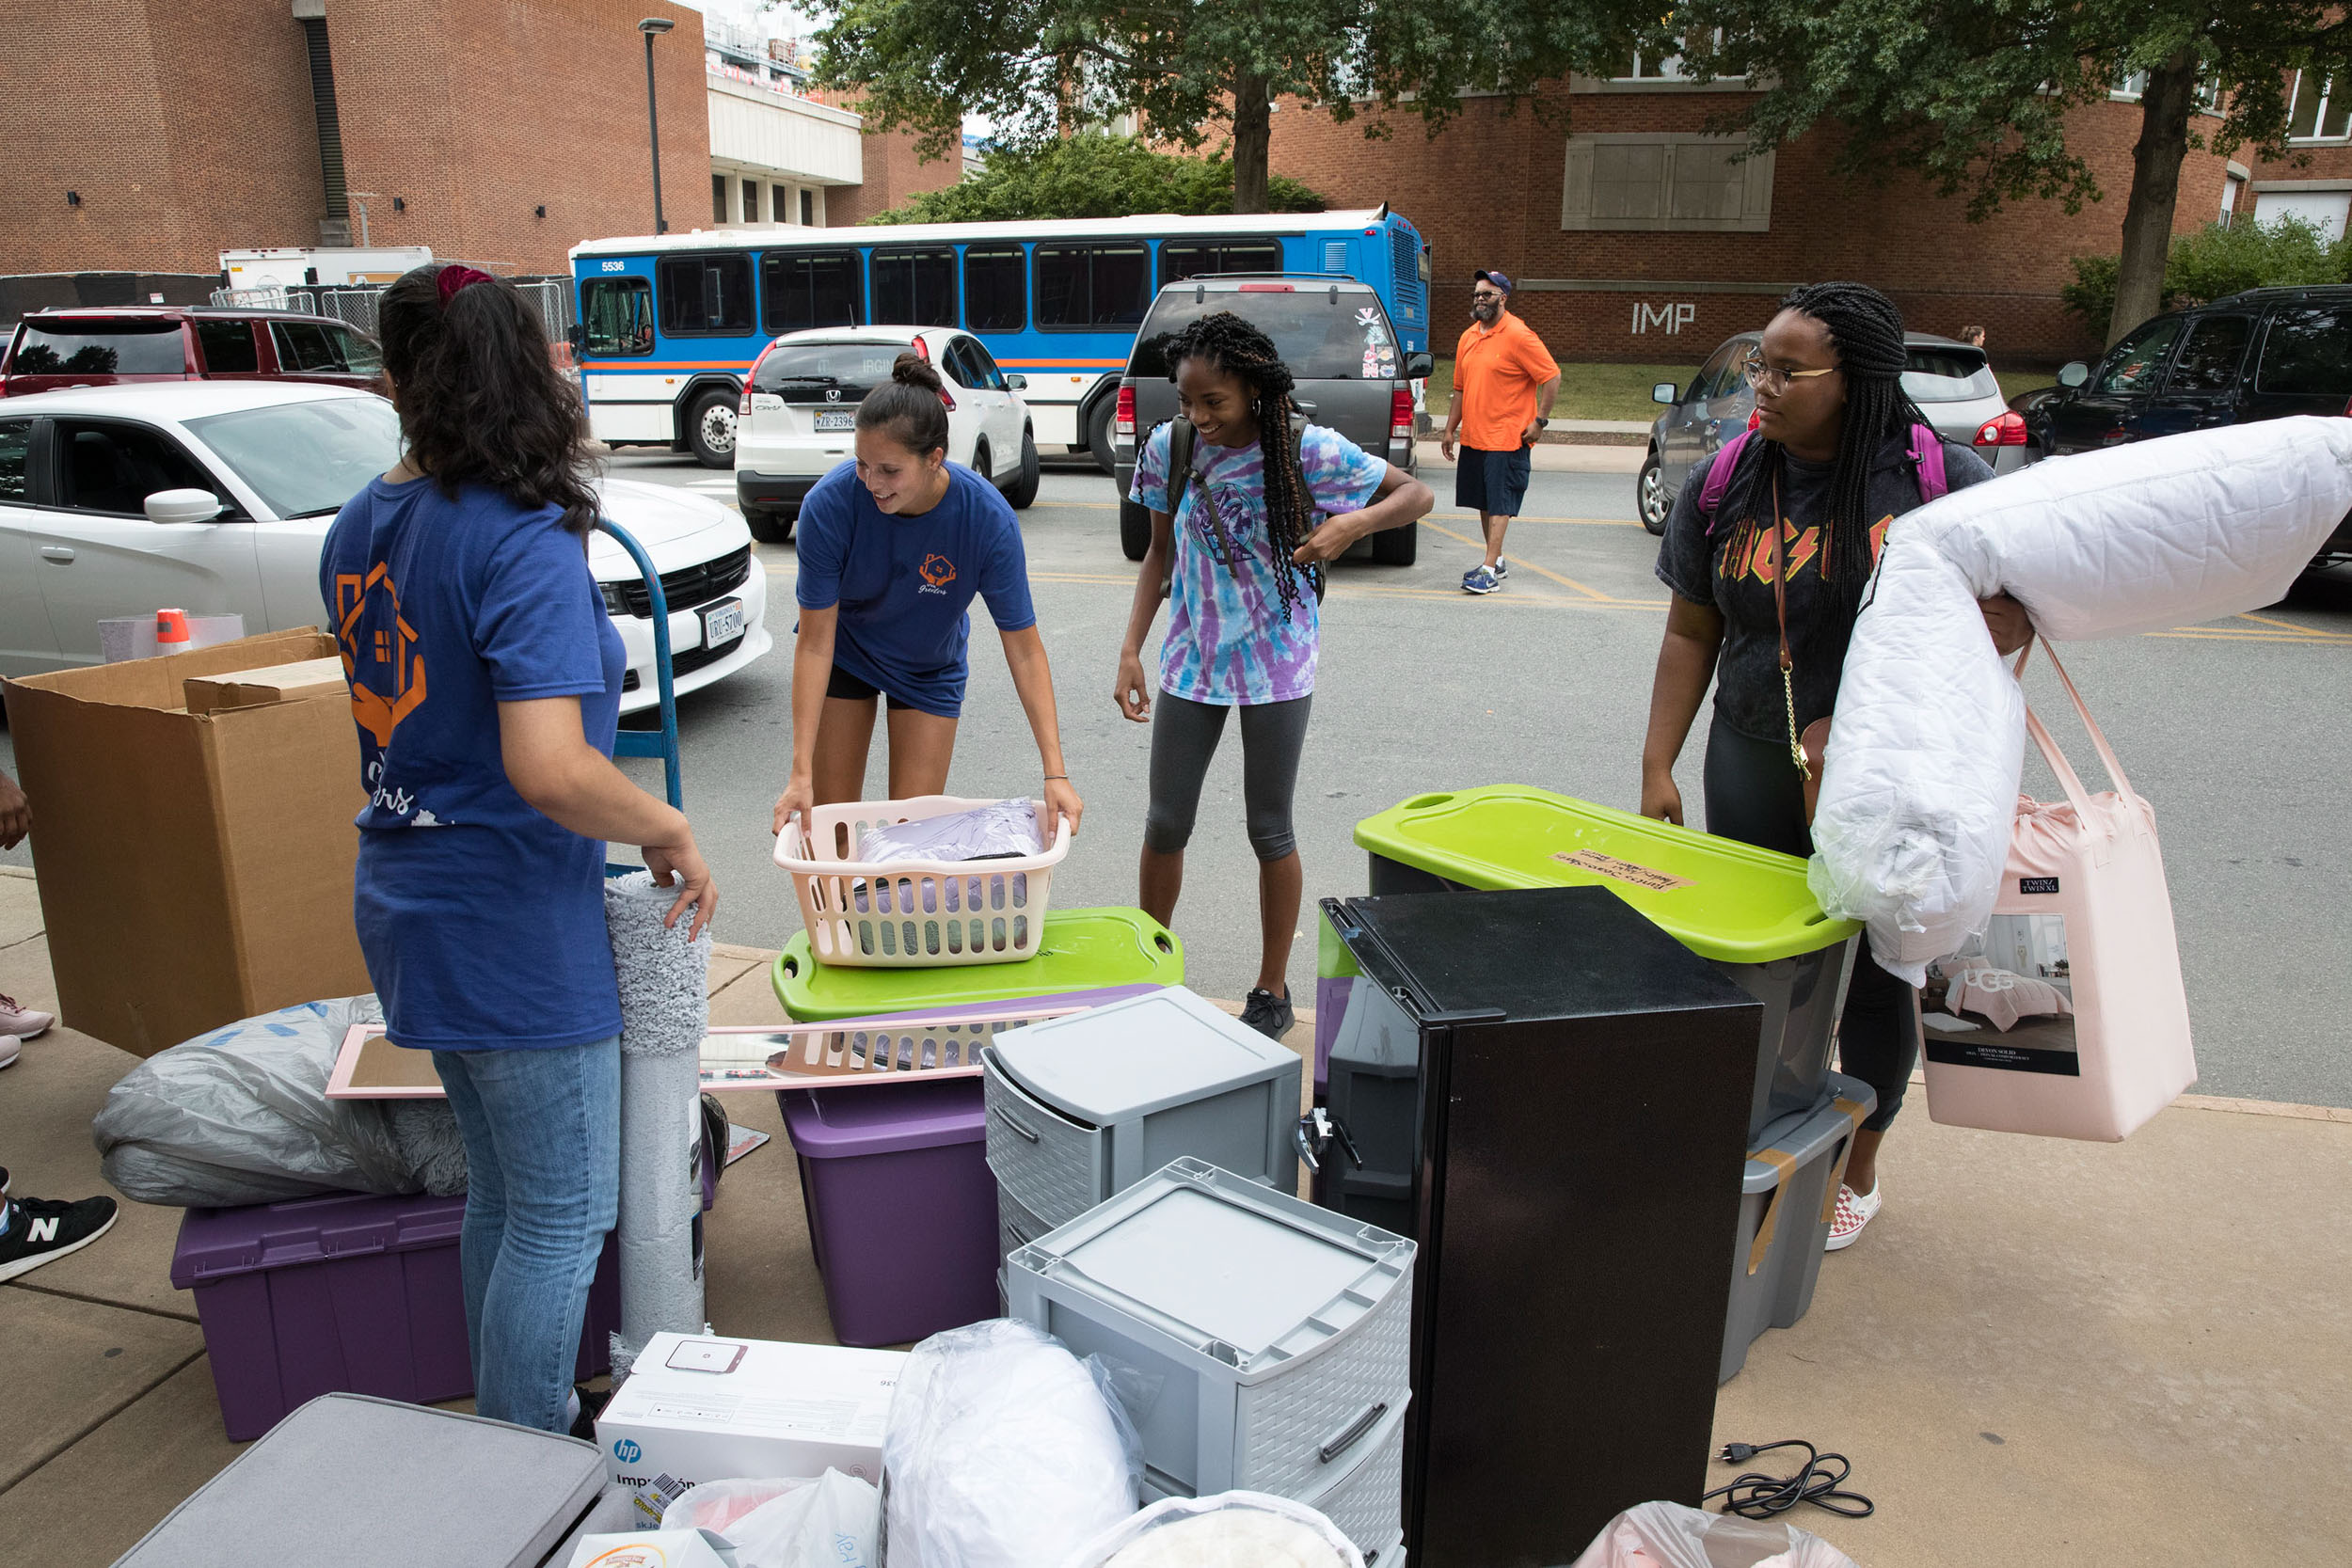 Taylor Gibson, far right, stands amid two carloads of belongings she hopes to fit into her room in Emmet. Her mother, Lisa, said she was prepared to have to bring some of her daughter's things back to their Chesterfield home.